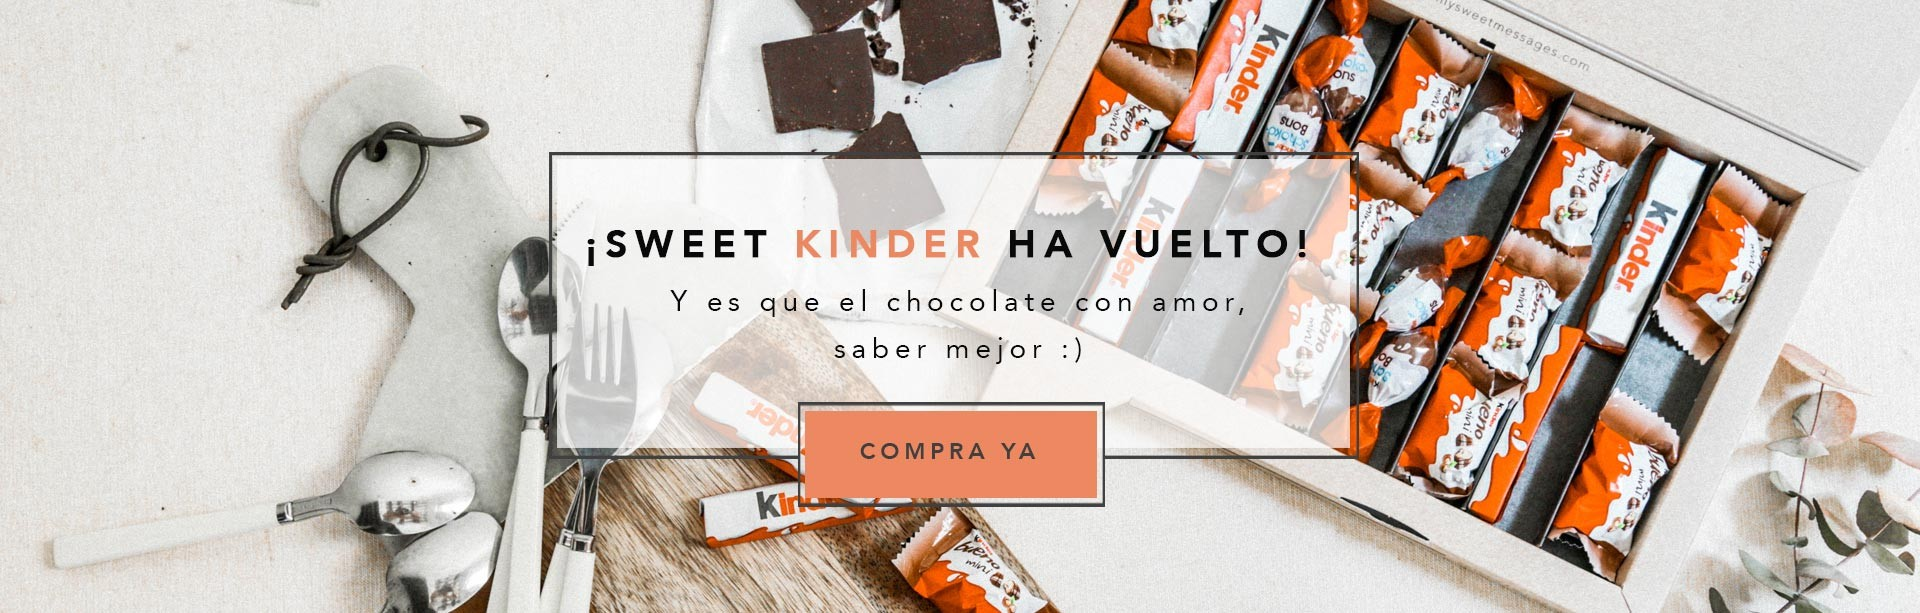 ¡Sweet Kinder a vuelto!